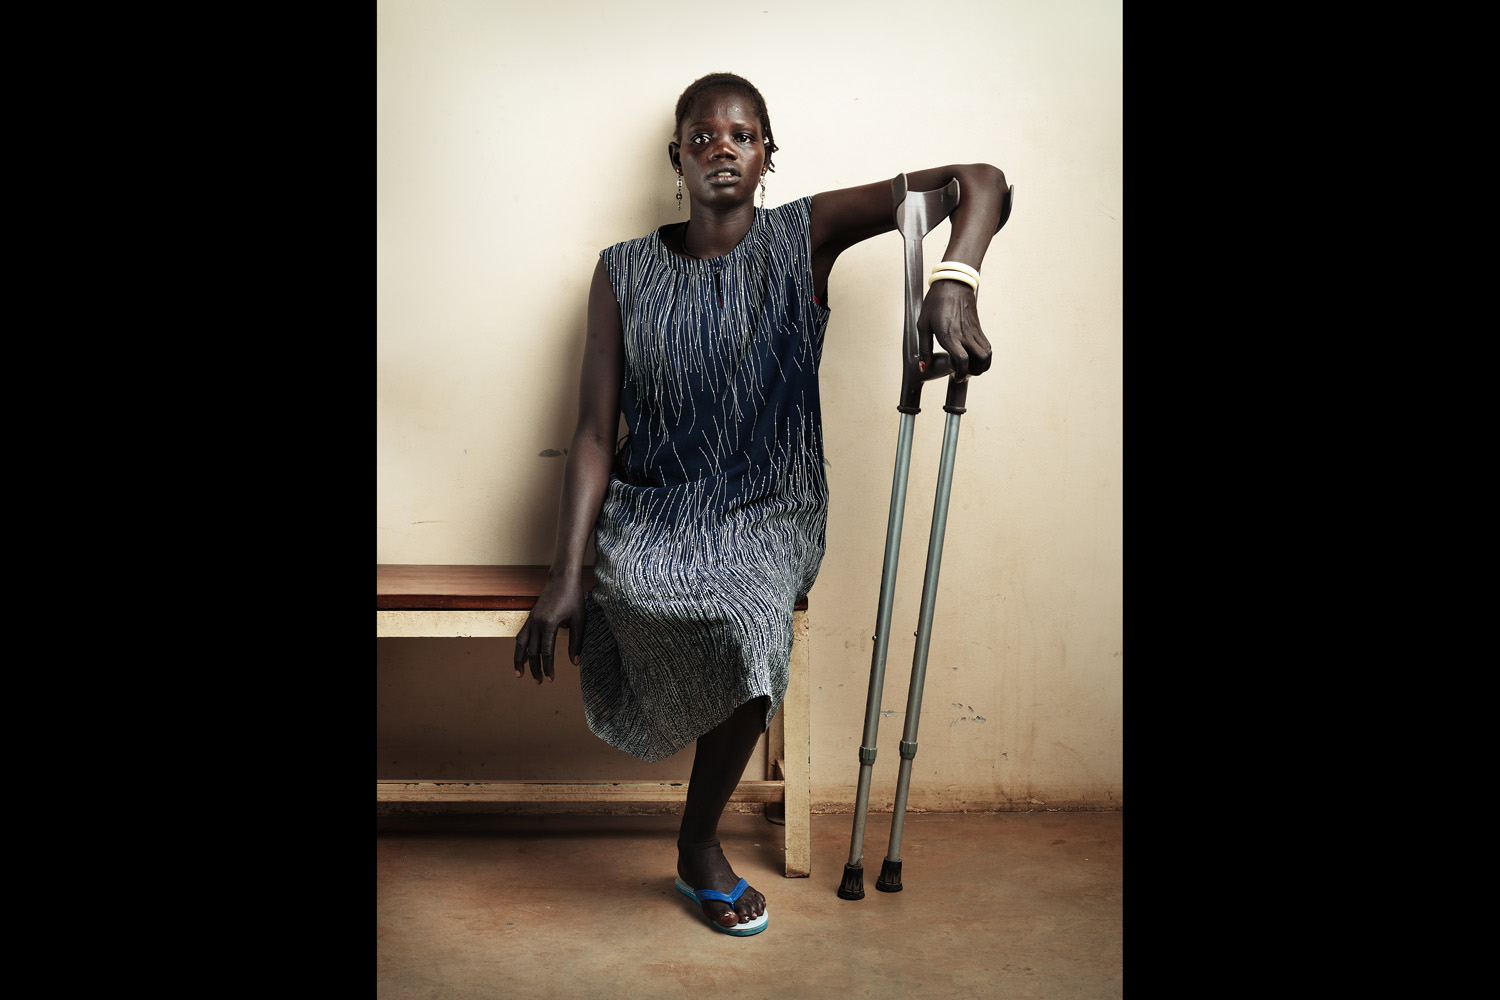 Nyaguna Dak lost her right leg in a mine accident and is being treated at ICRC in Juba, South Sudan.